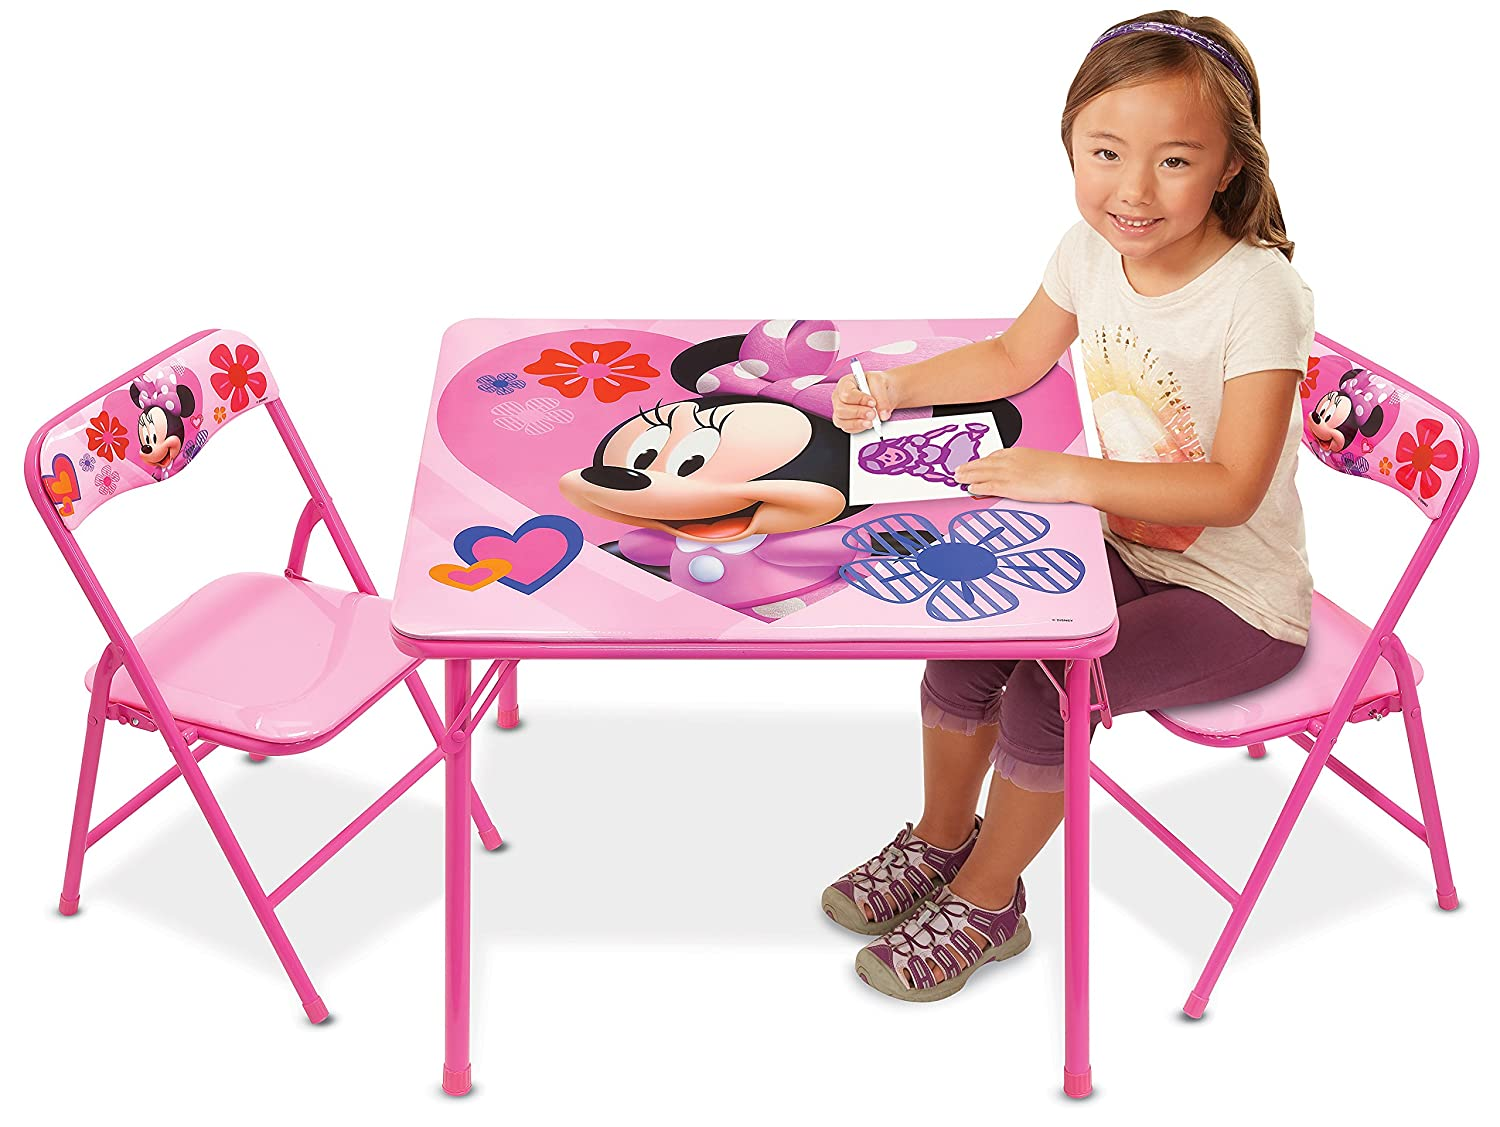 Mickey Mouse Club House New Minnie, Mickey Mouse Clubhouse Activity Table Playset Moose Mountain - Domestic 42928